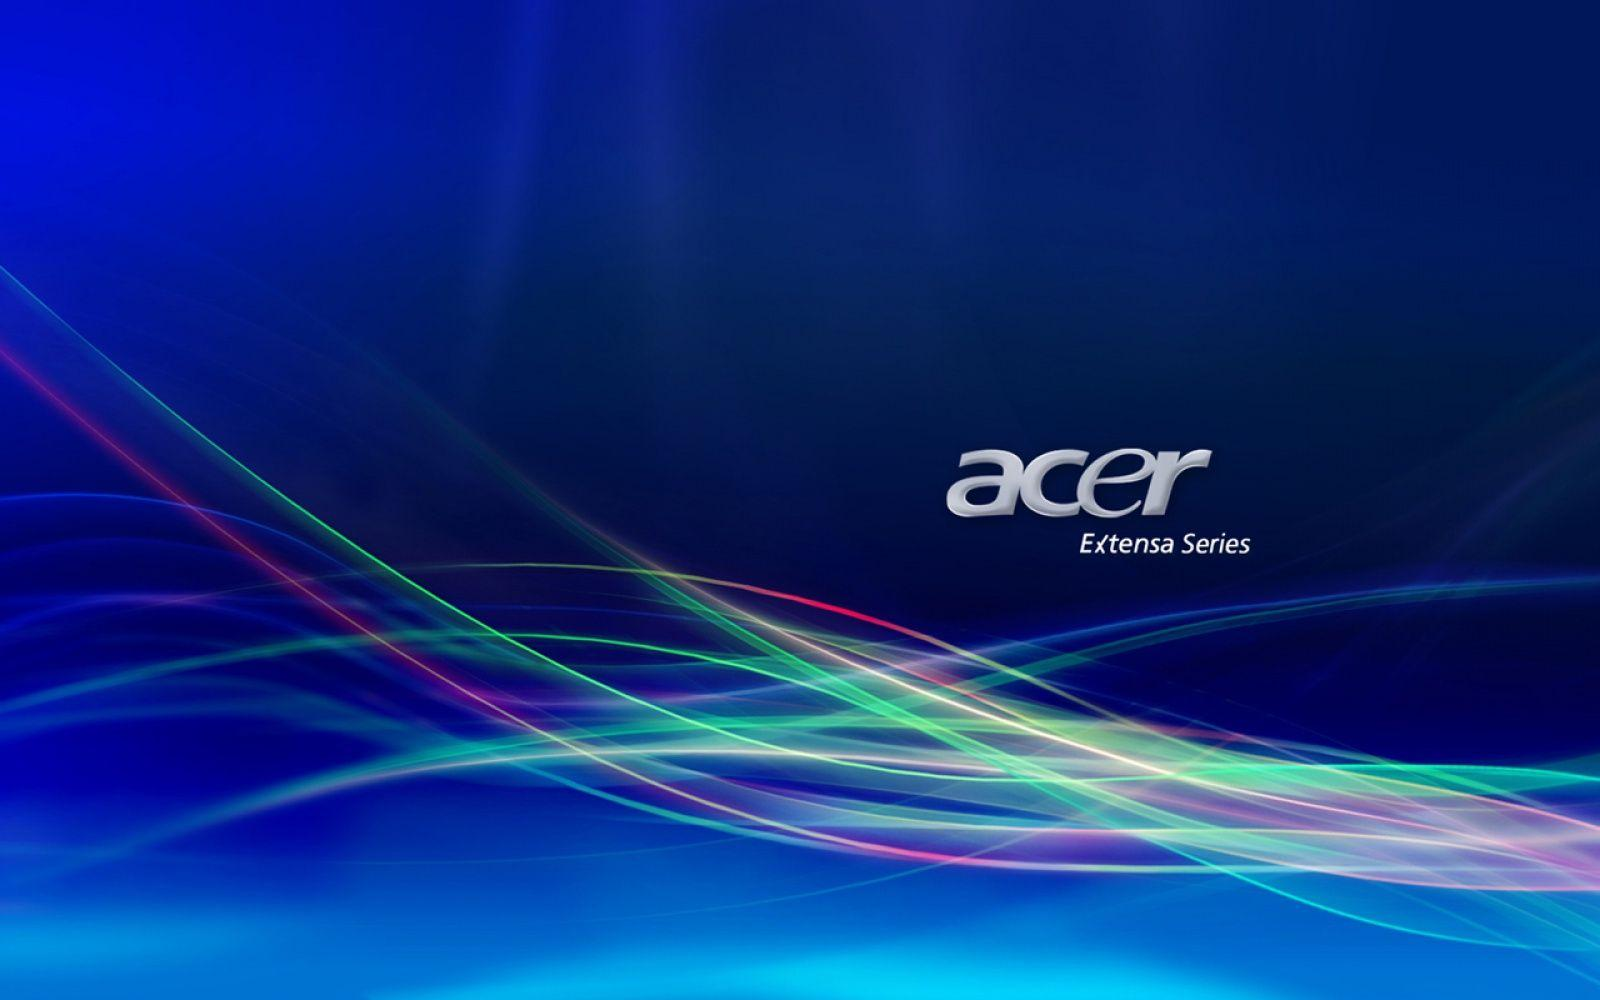 Acer Wallpapers 2017 - Wallpaper Cave